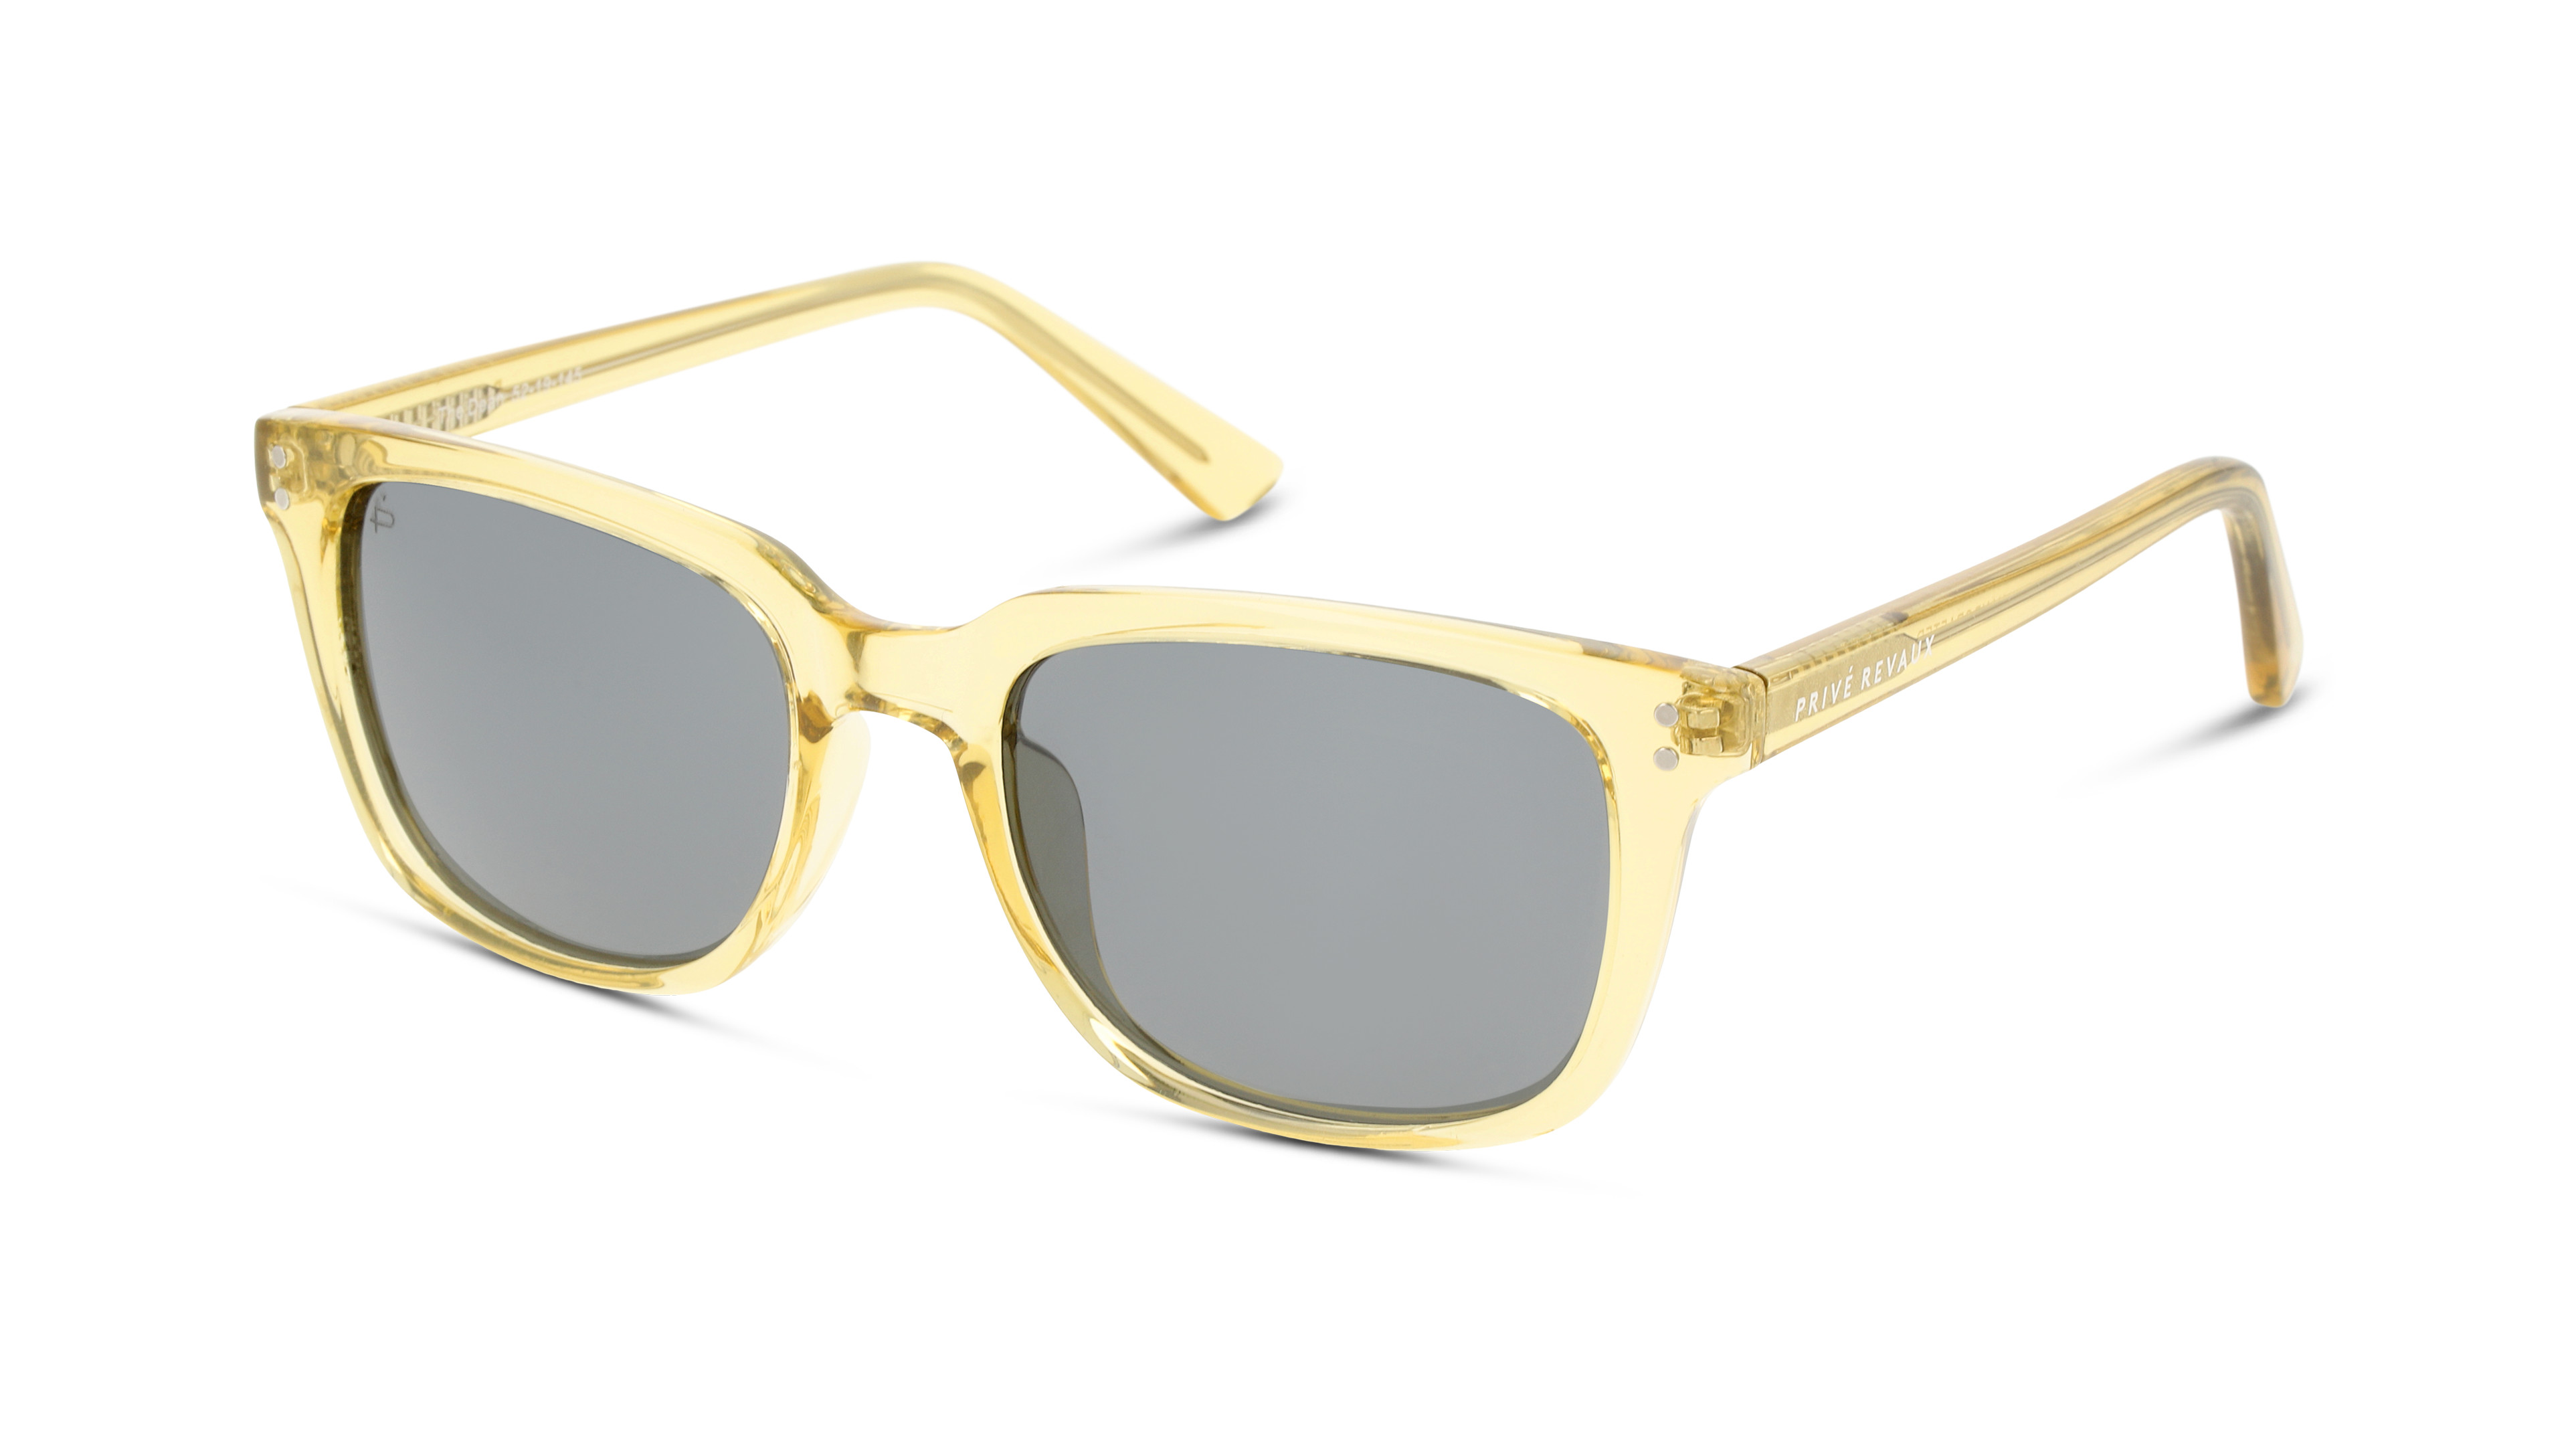 0818893026386-front-ex_angle-prive-revaux-sonnenbrille-the_dean-the-dean-transparent-yellow